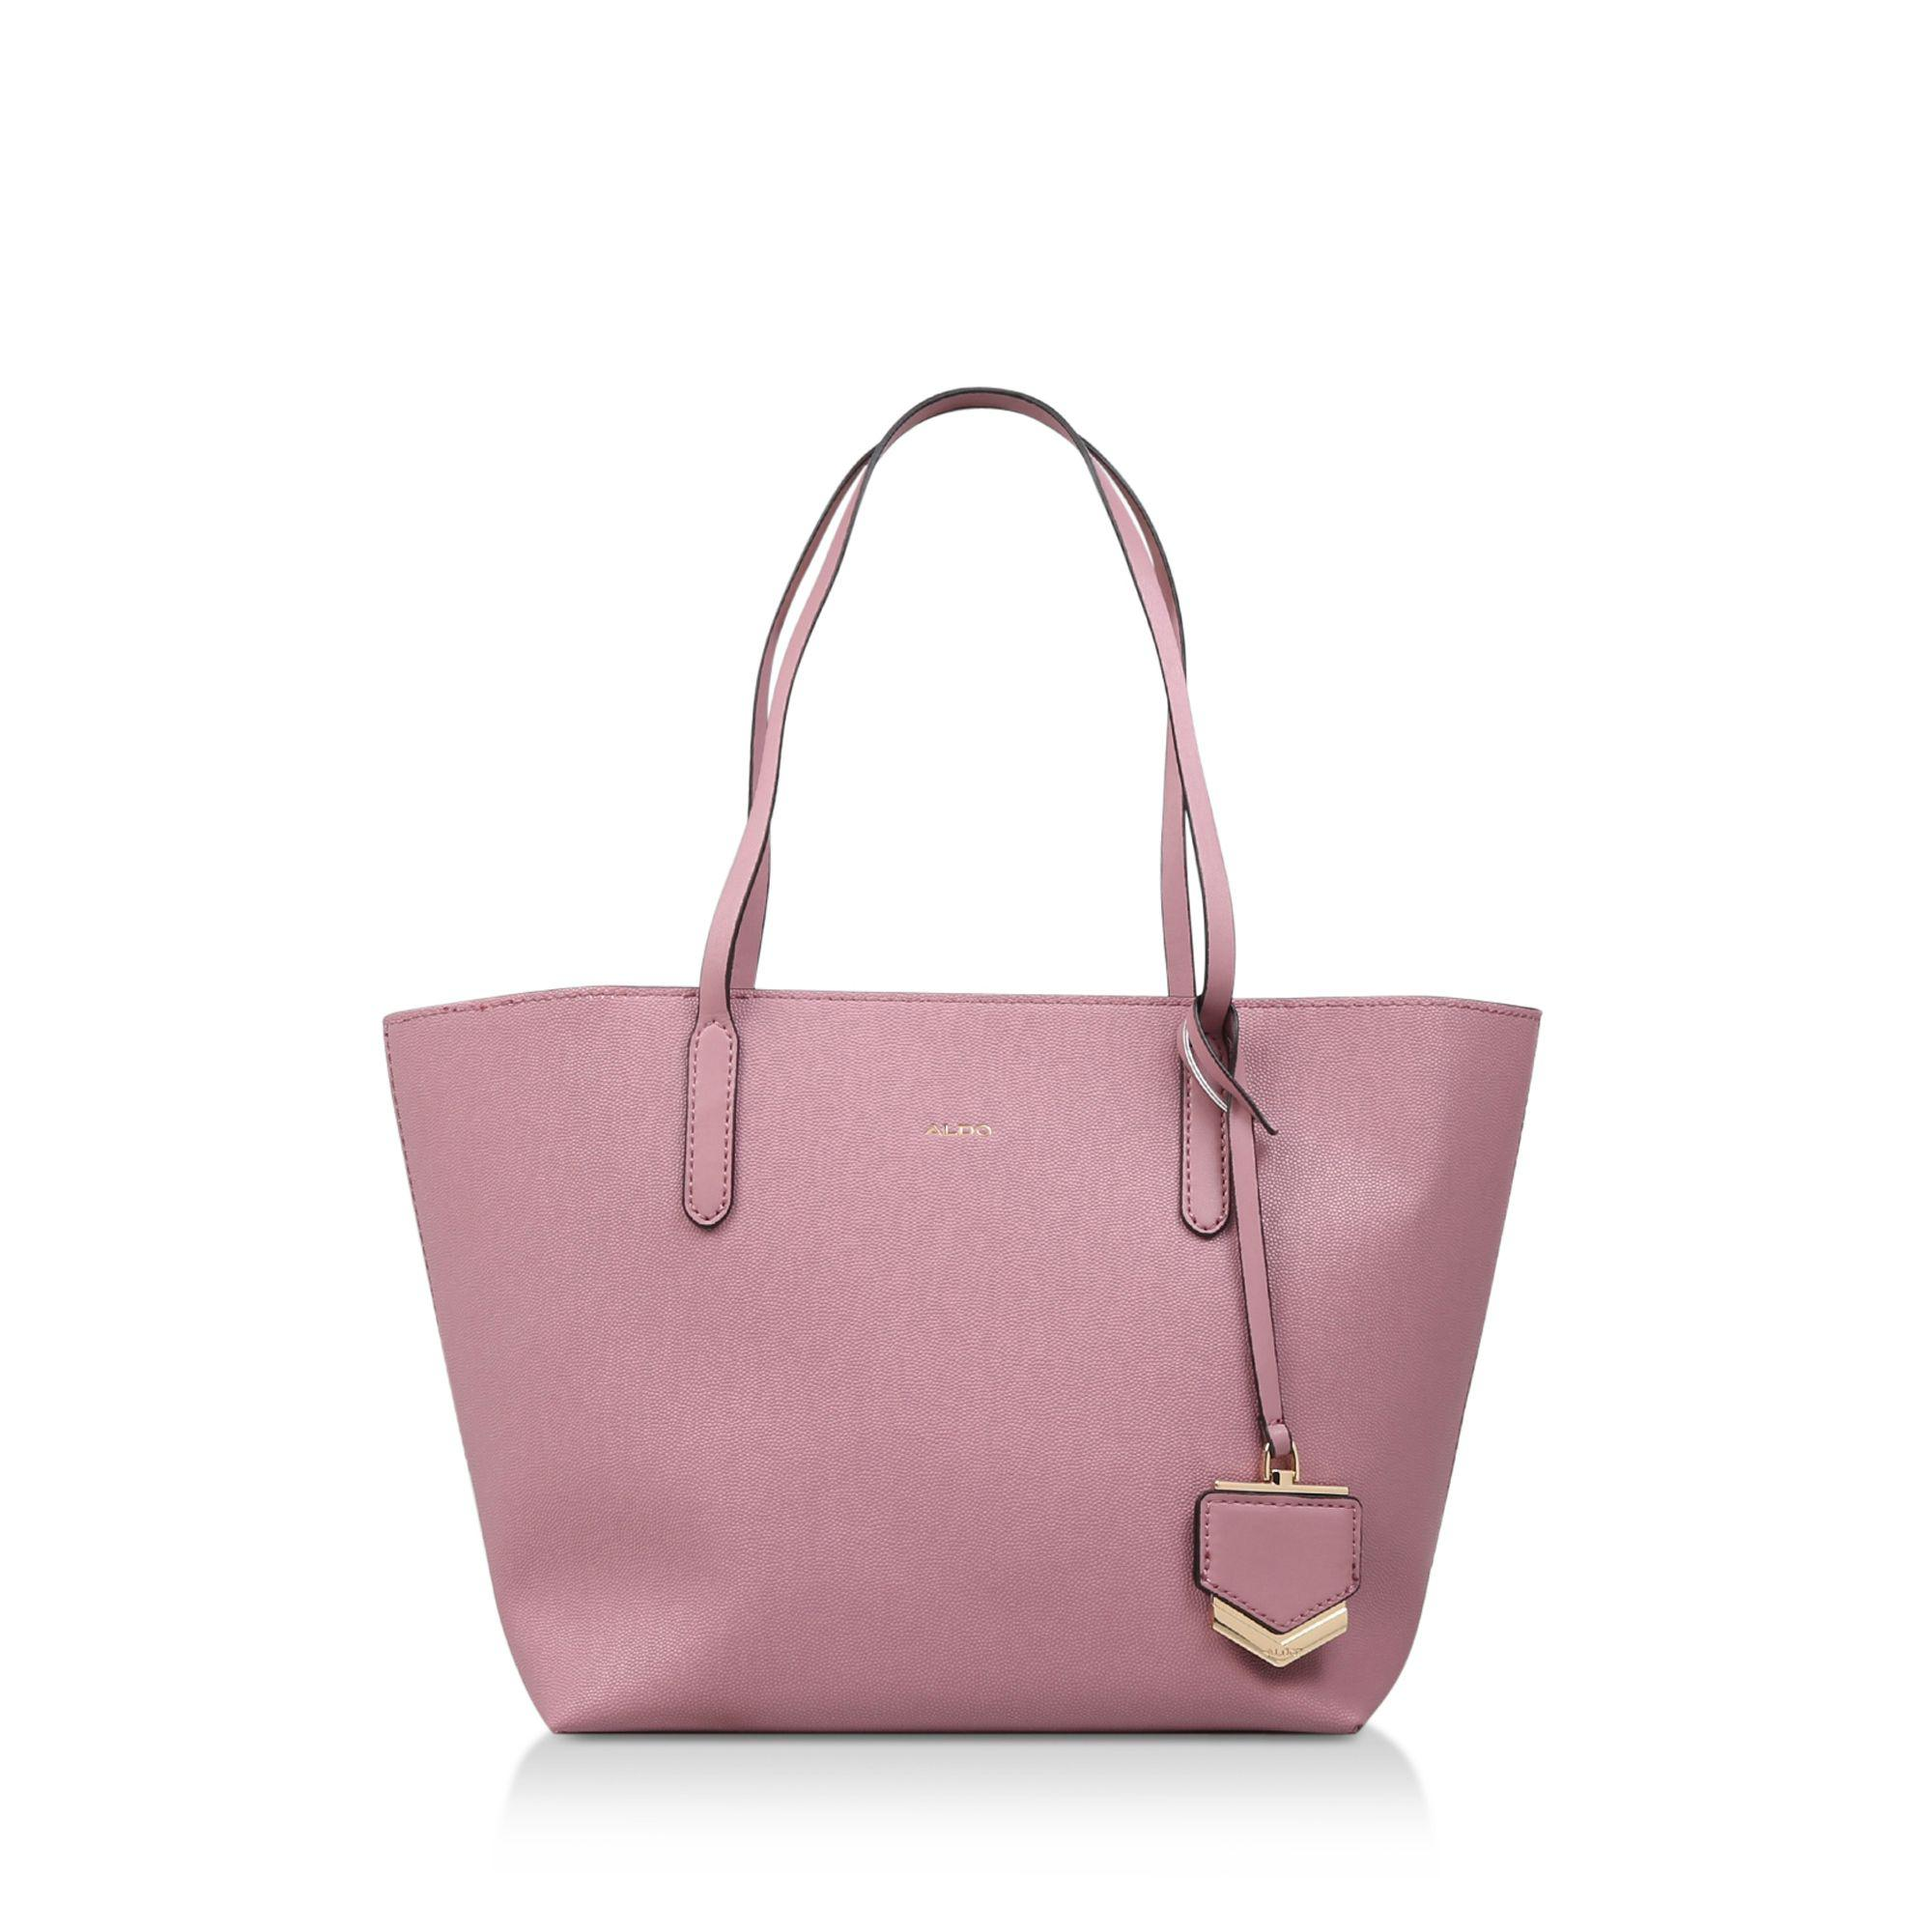 3ea4a69c4e0 ALDO Pink  dyer  Tote Bag in Pink - Lyst